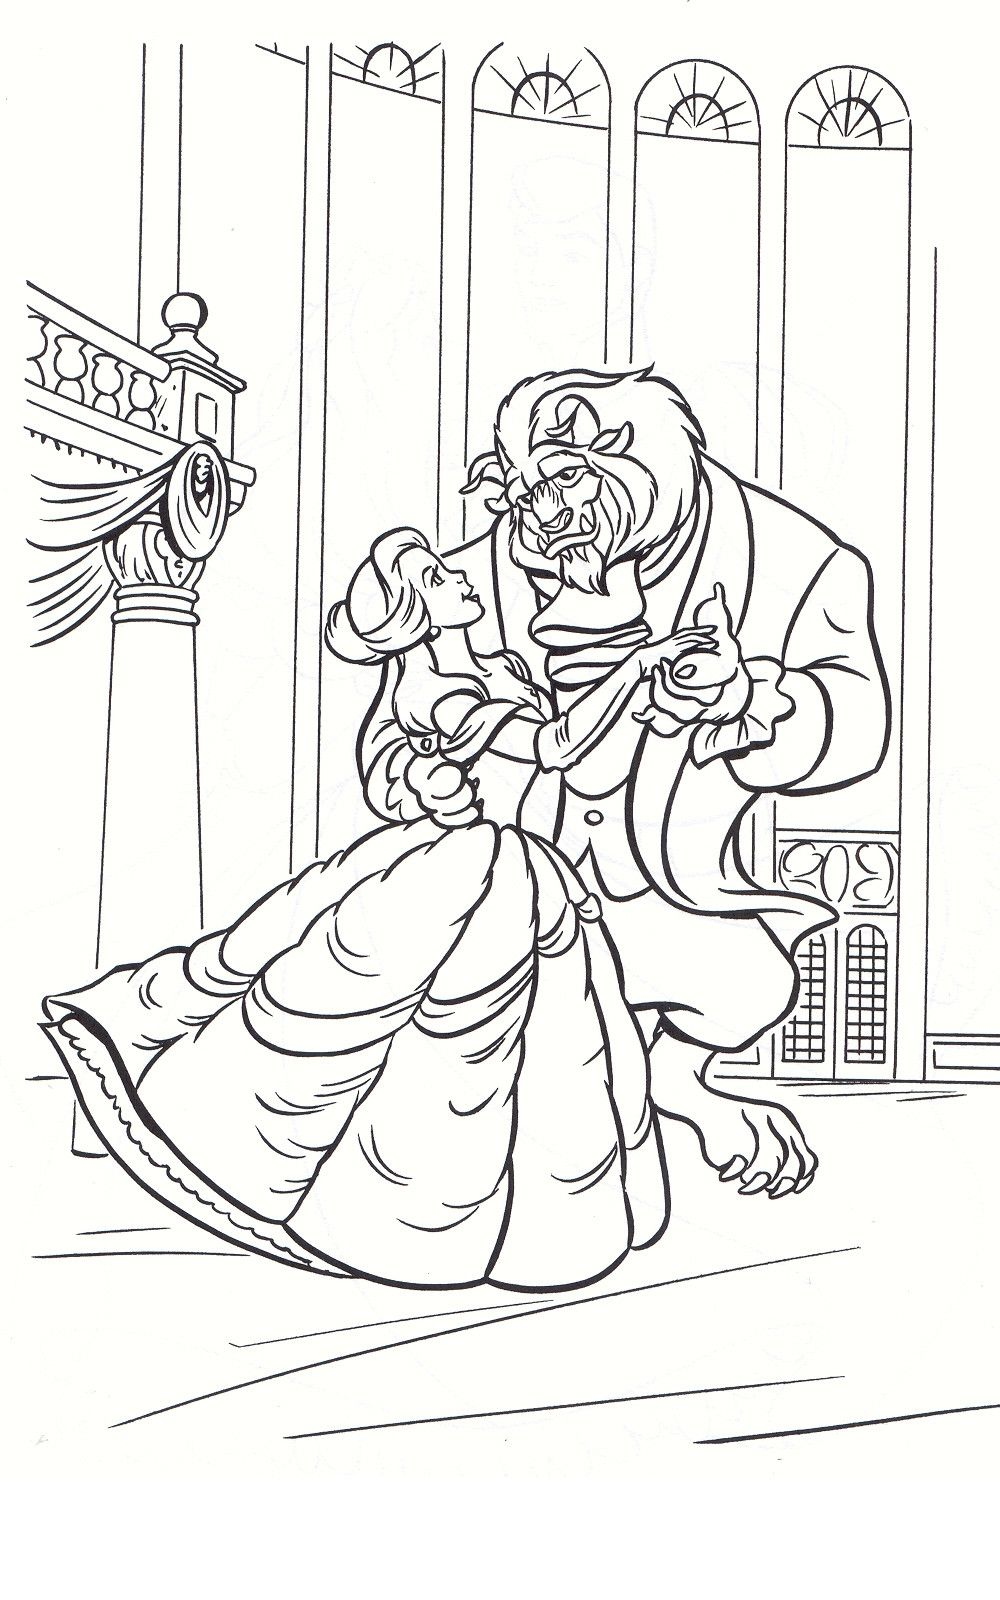 50 Beauty And The Beast Coloring Pages Rk8c Rose Coloring Pages Beauty And The Beast Drawing Coloring Pages [ jpg ]